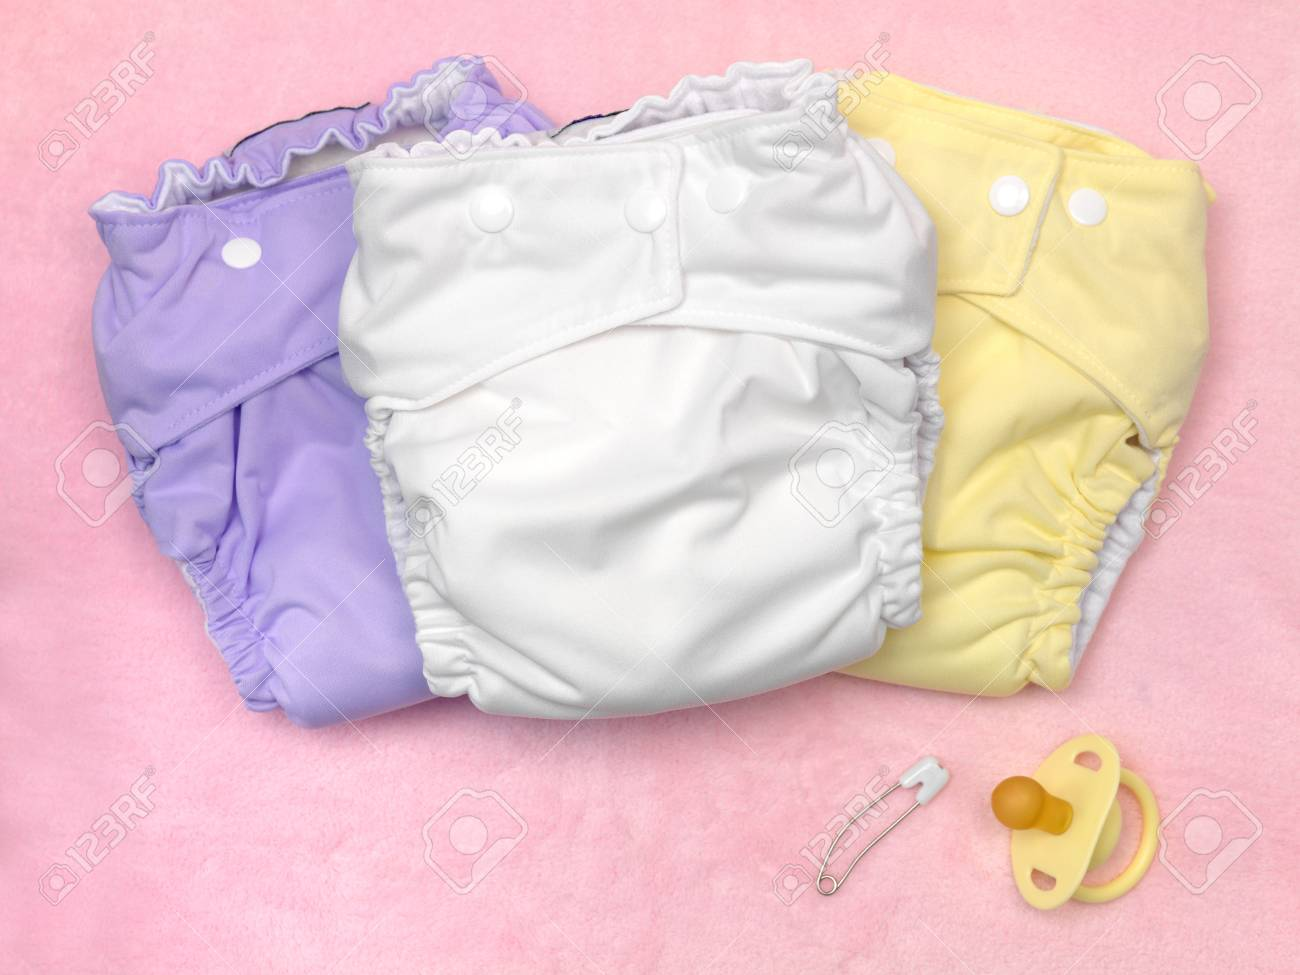 A modern cloth nappy isolated against a pink background Stock Photo - 7513709